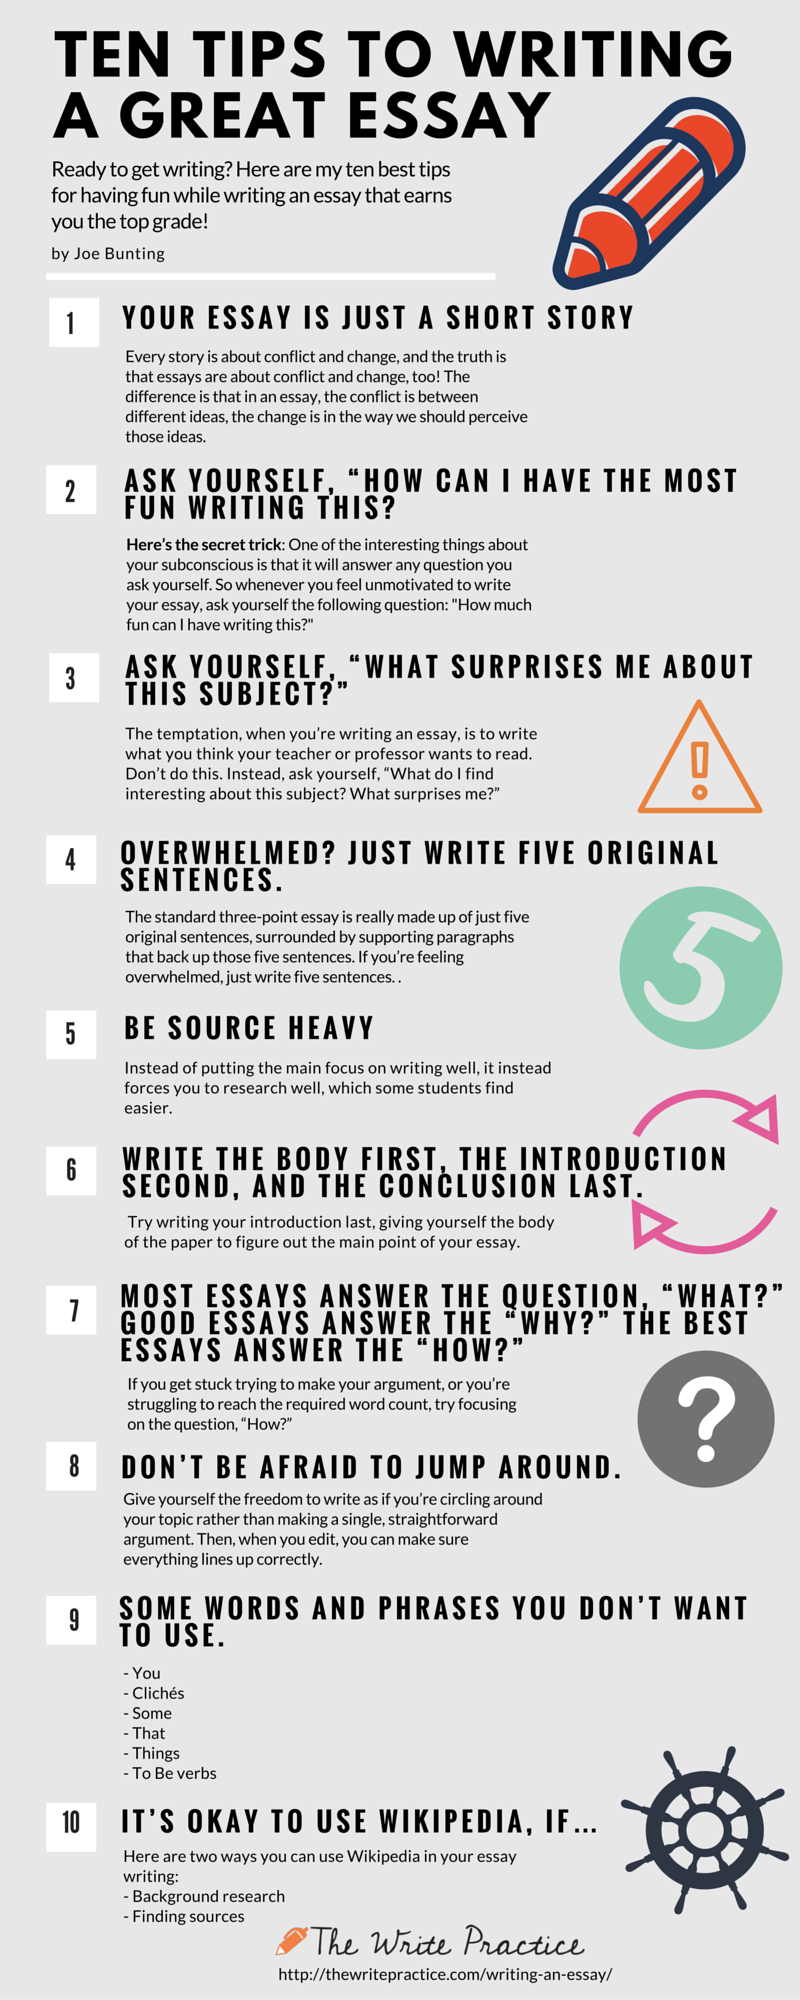 001 Tips For Writing An Essay1 Essay Example How To Write Good Surprising Essays A Issue Gre Ap English Full